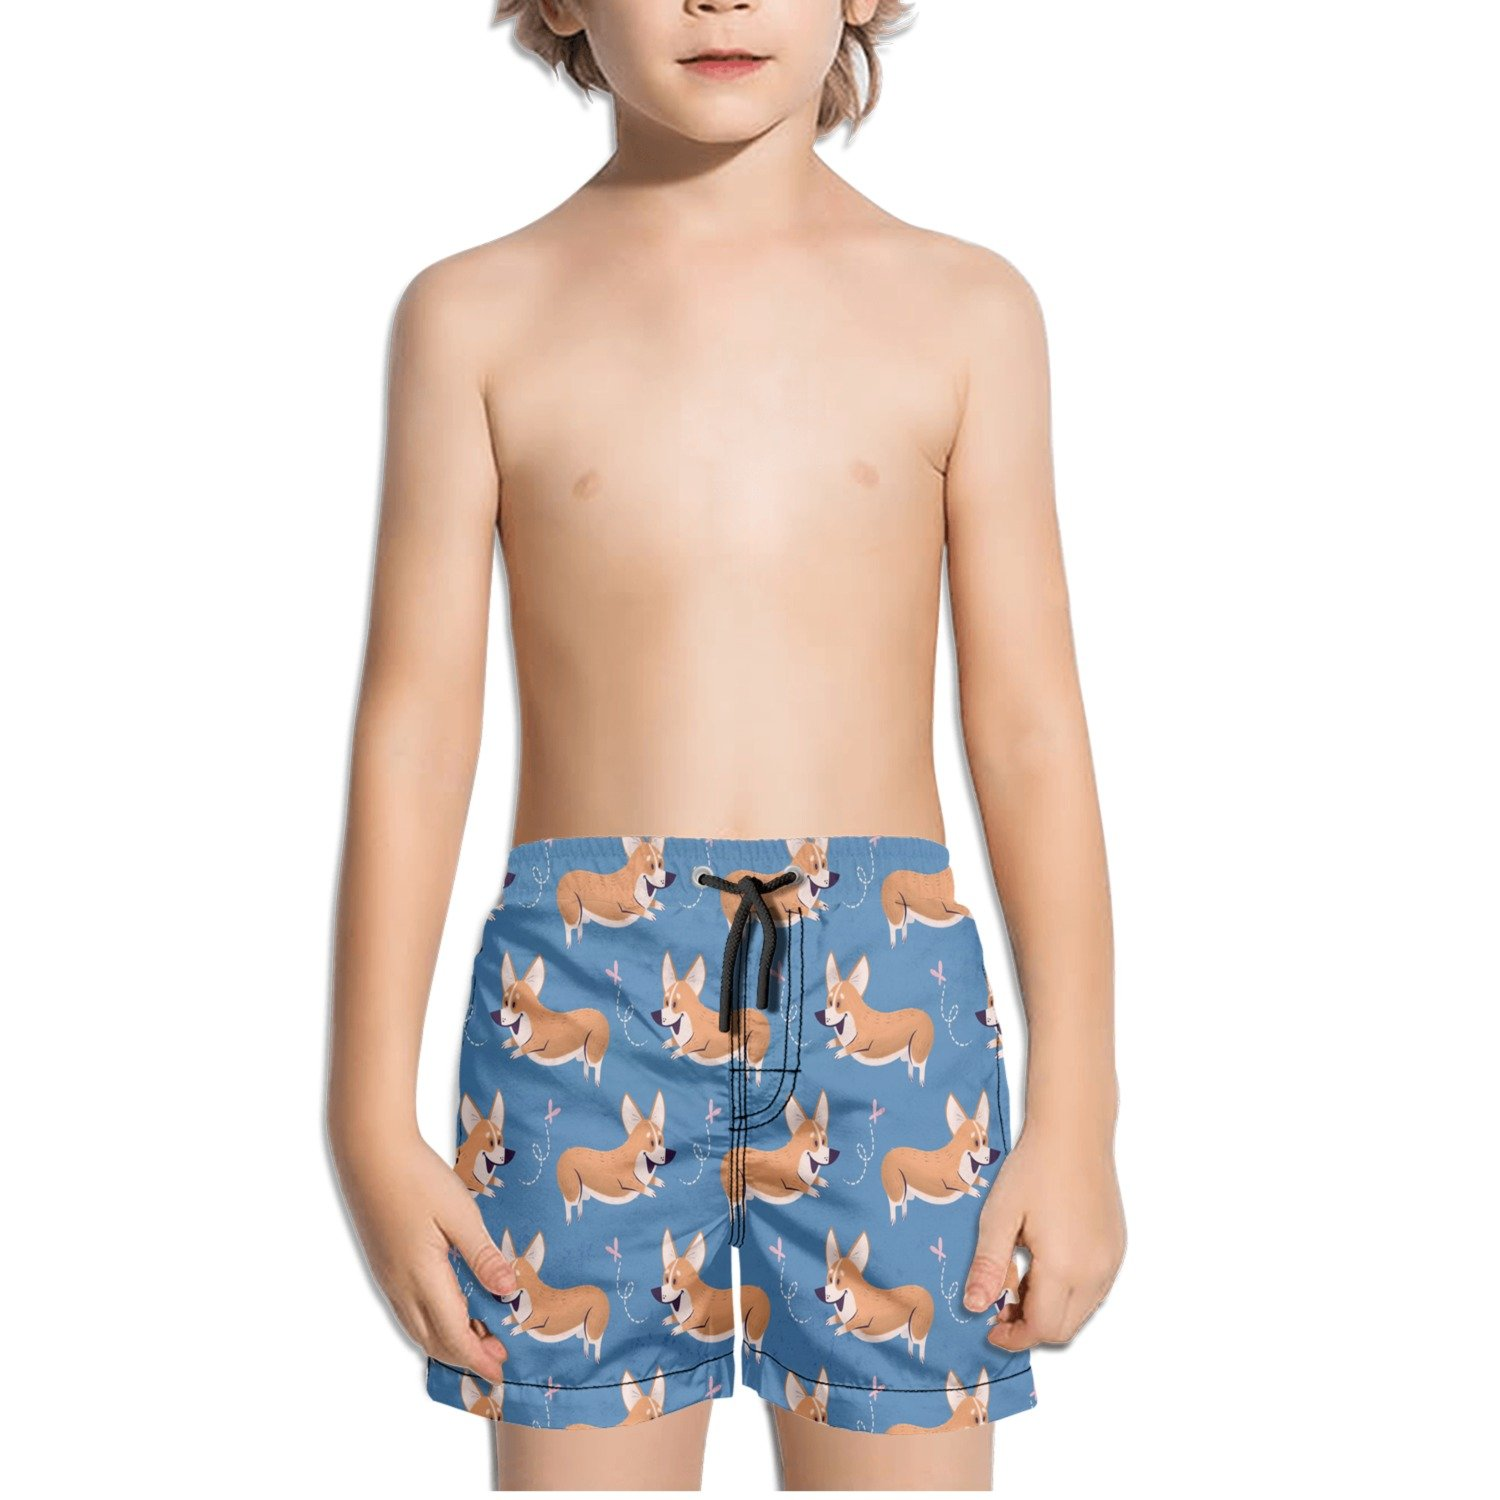 Corgi Chasing Butterfly Pattern Kids Boys Fast Drying Beach Swim Trunks Pants